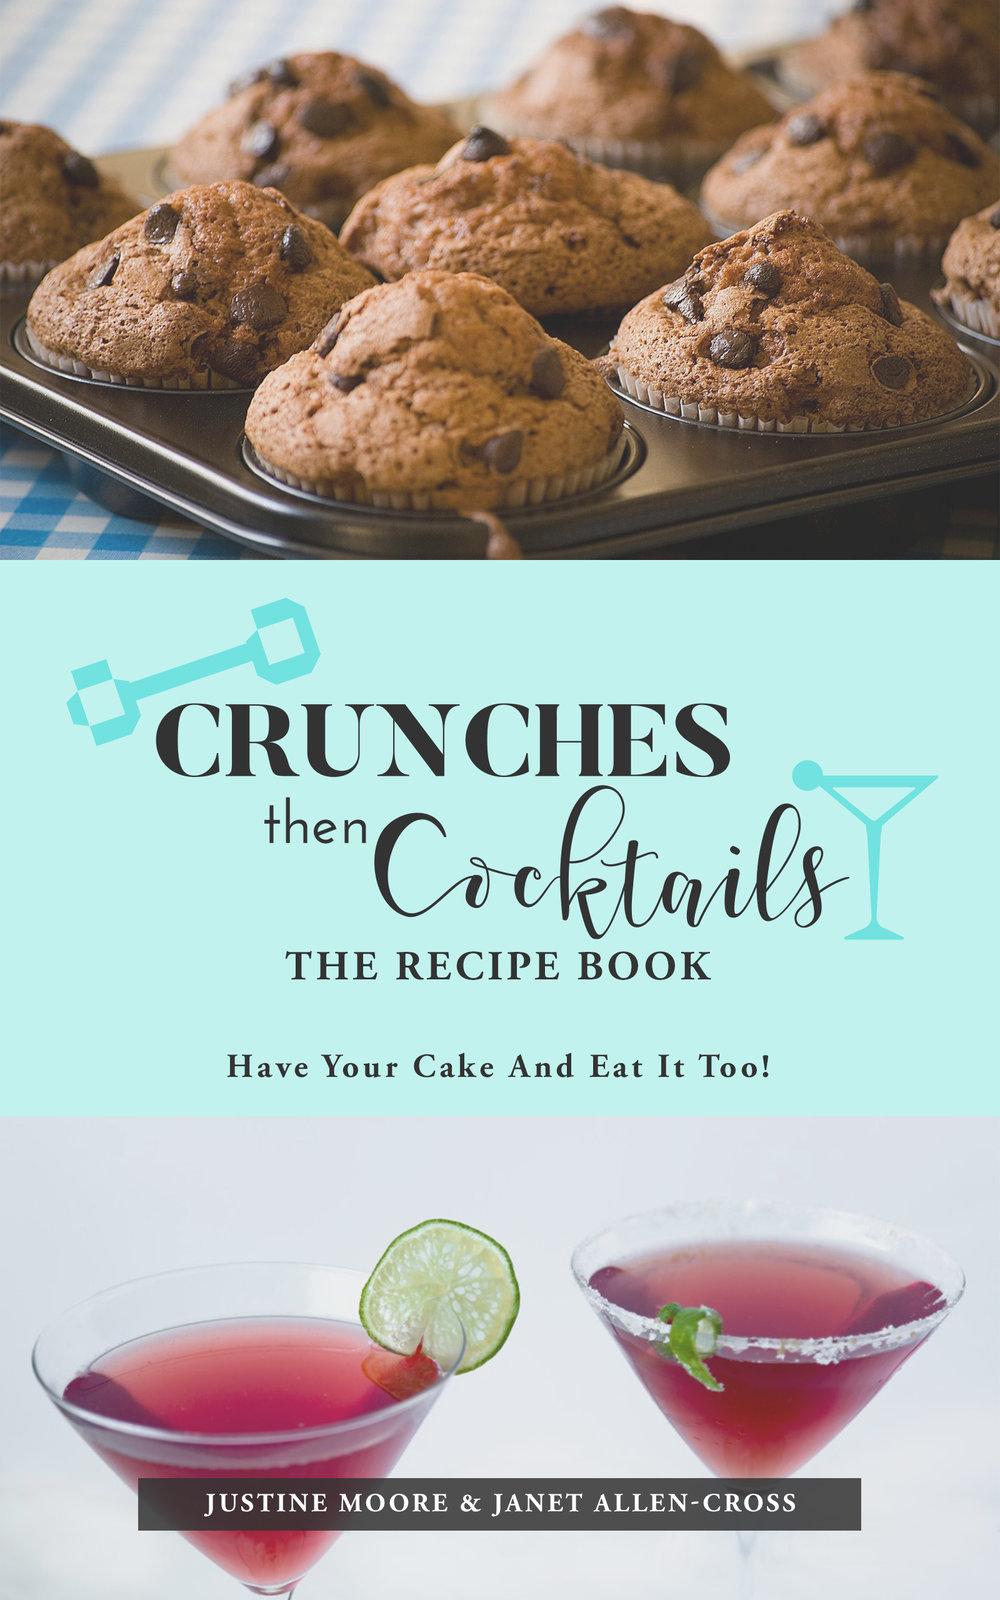 Crunches then Cocktails Recipe Book Justine Moore eBook